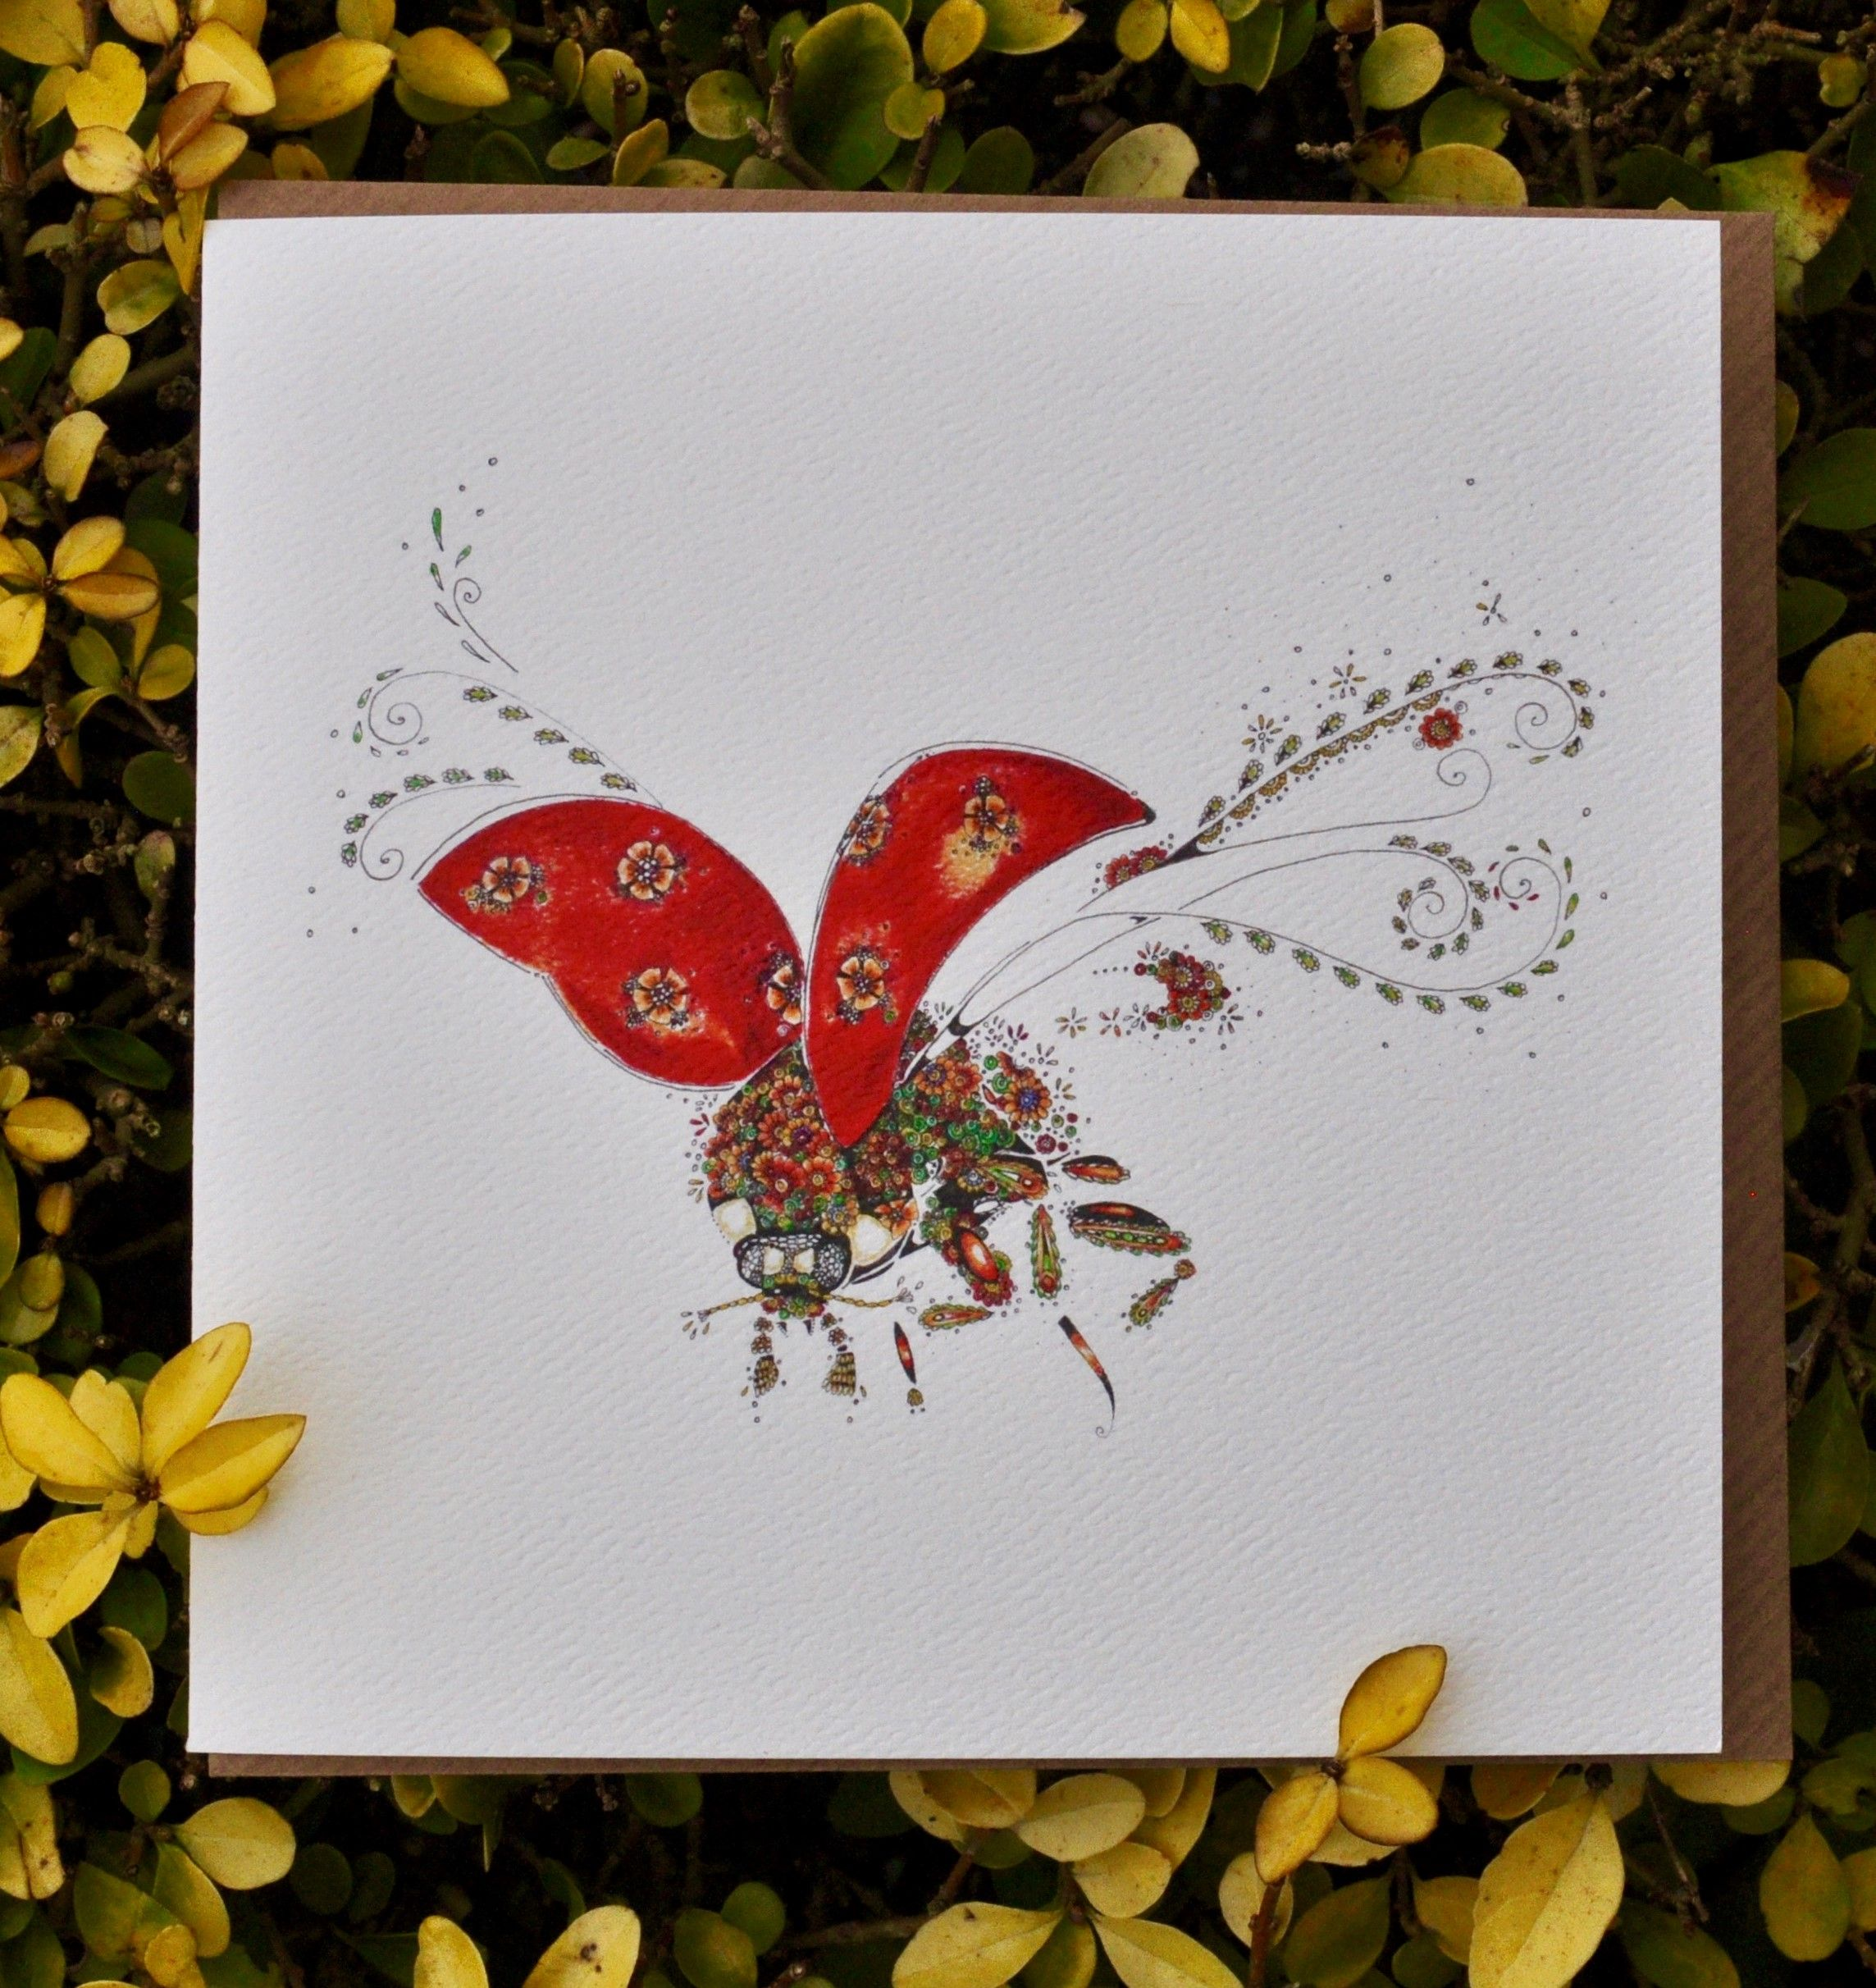 One Of My Latest Illustrations Of A Ladybird Flying Available As A